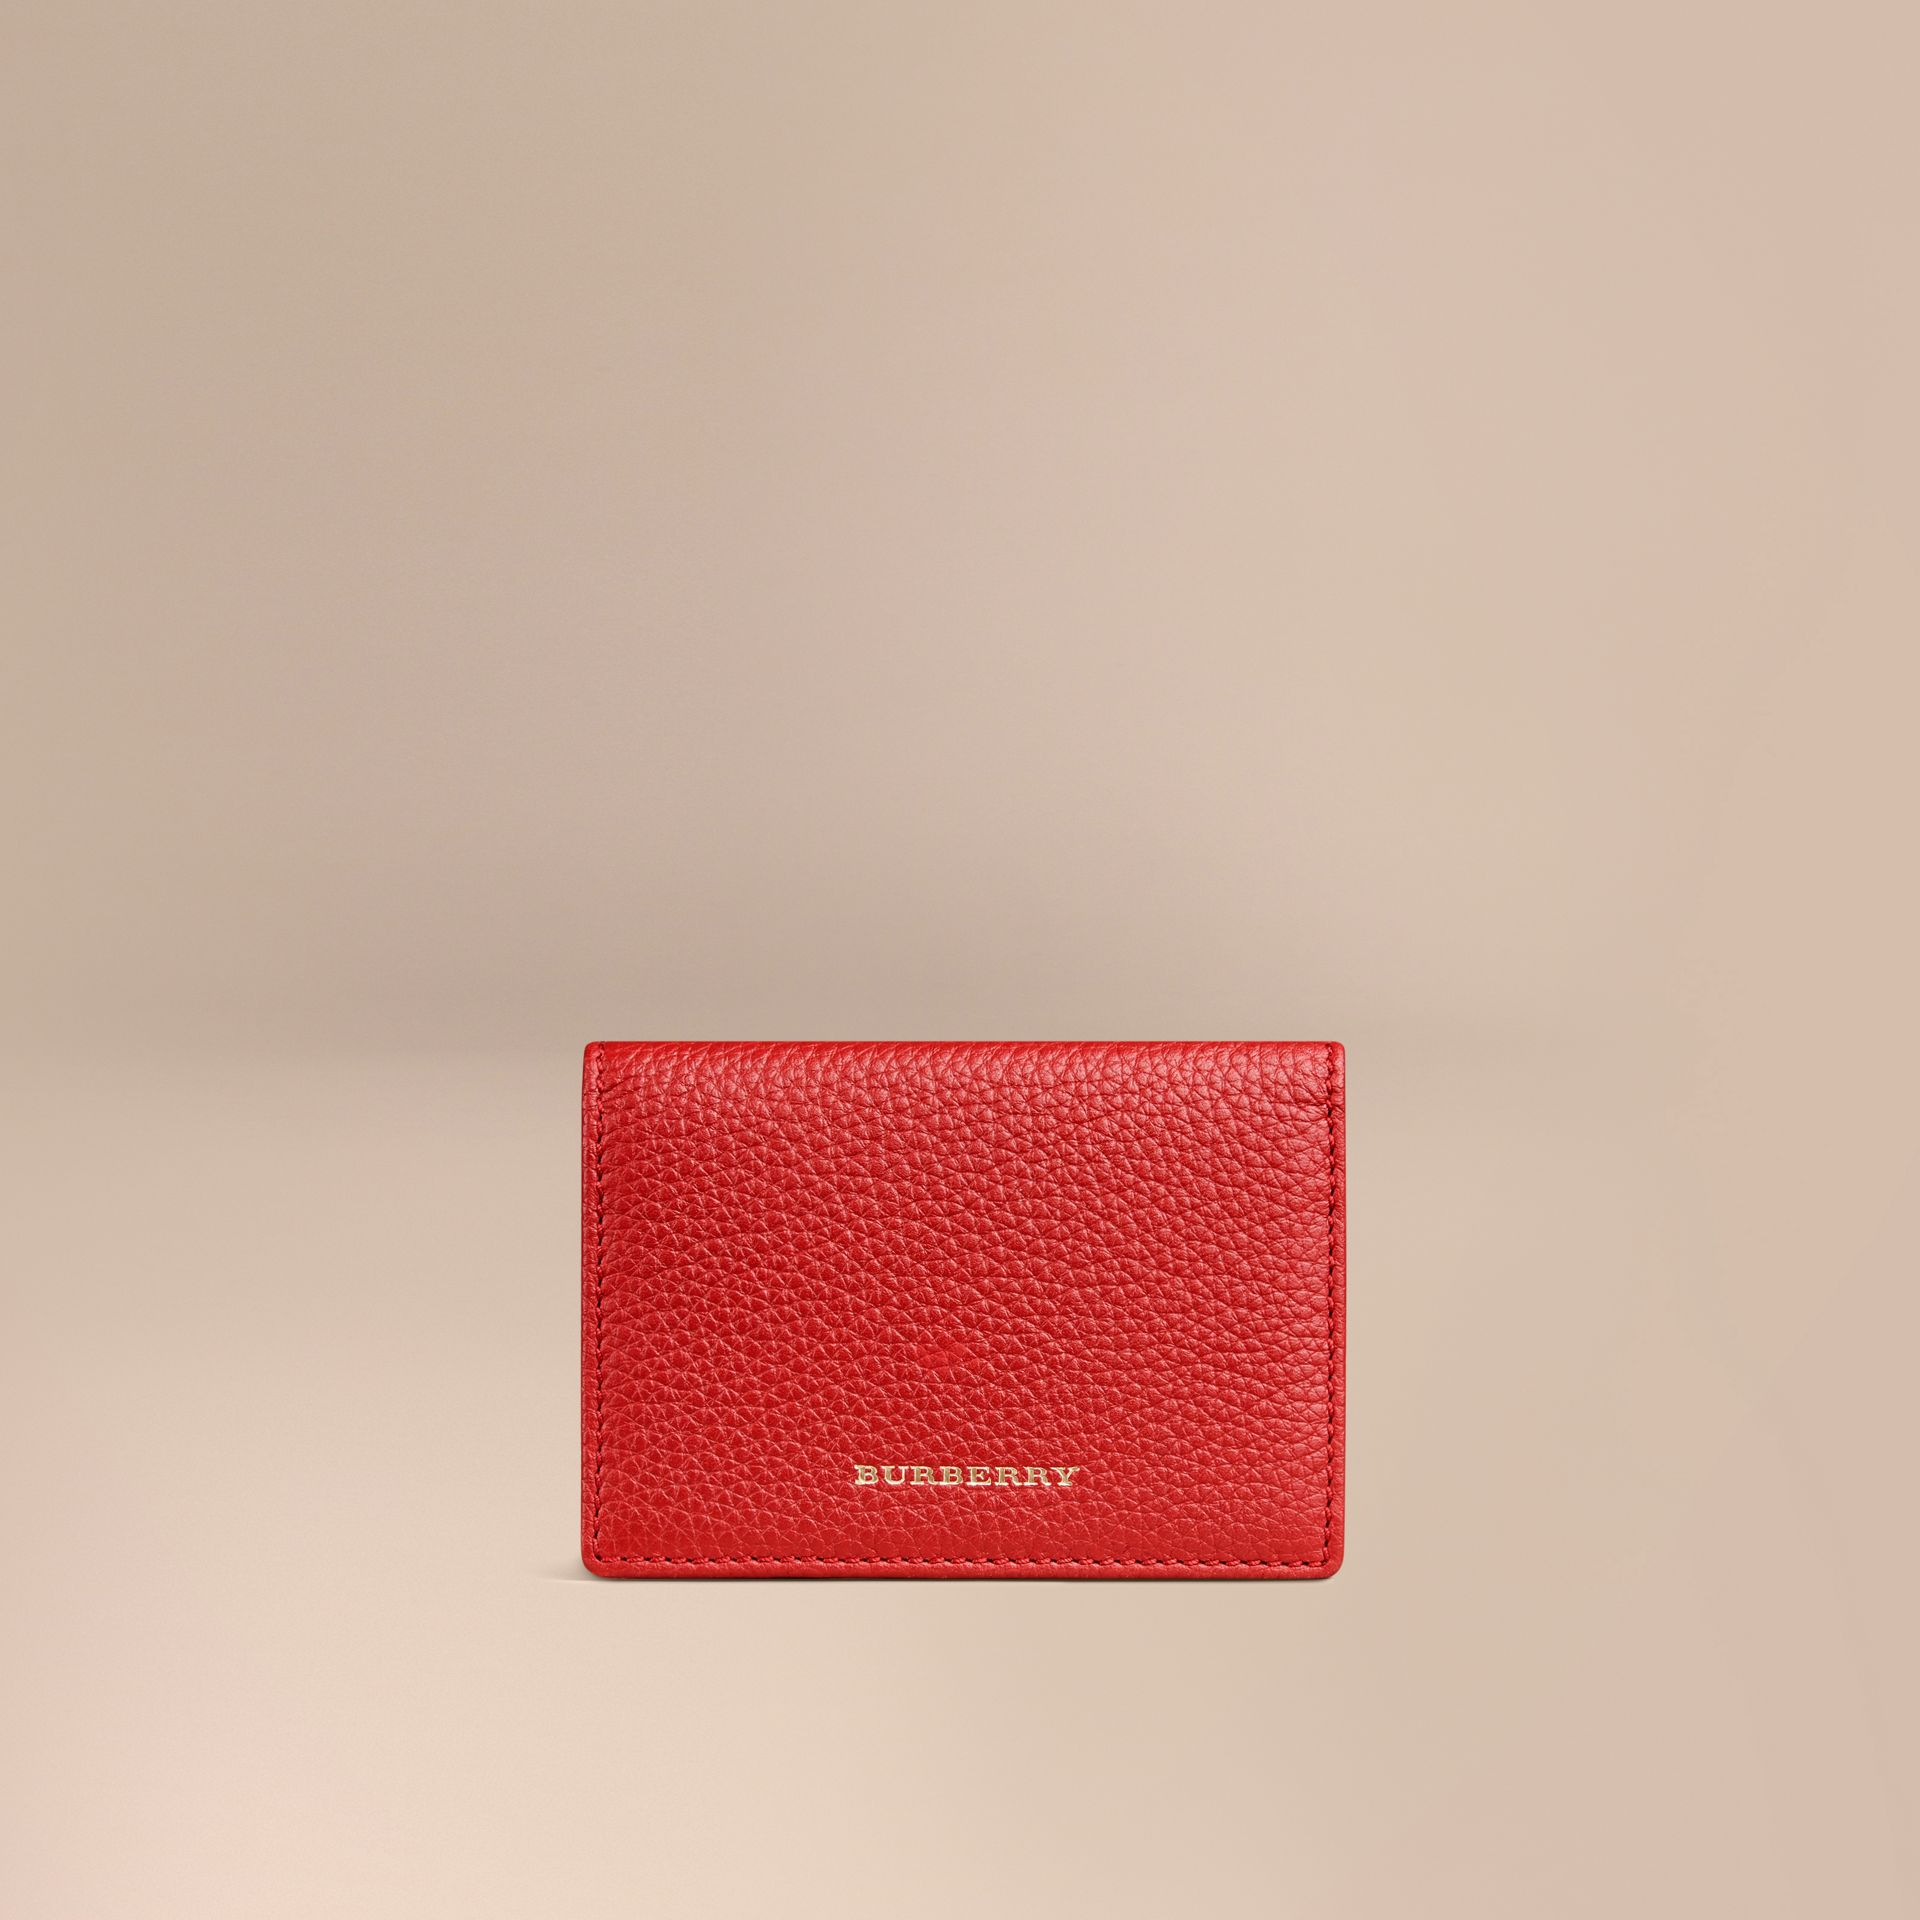 Porte-cartes en cuir grené (Rouge Parade) | Burberry - photo de la galerie 1